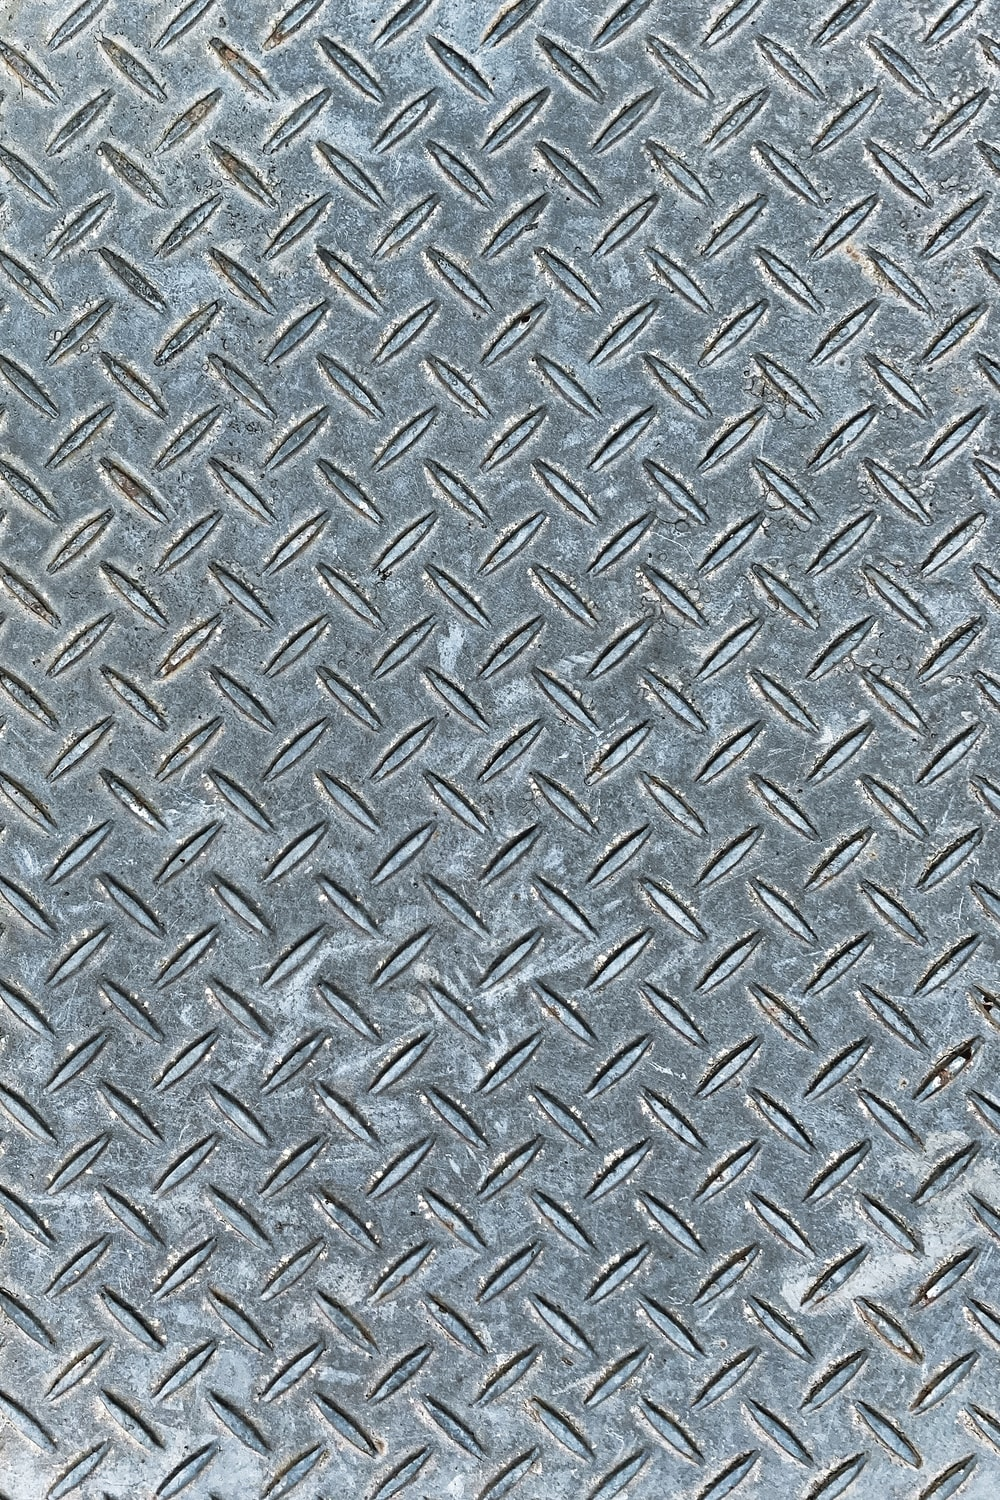 grey and black leather textile